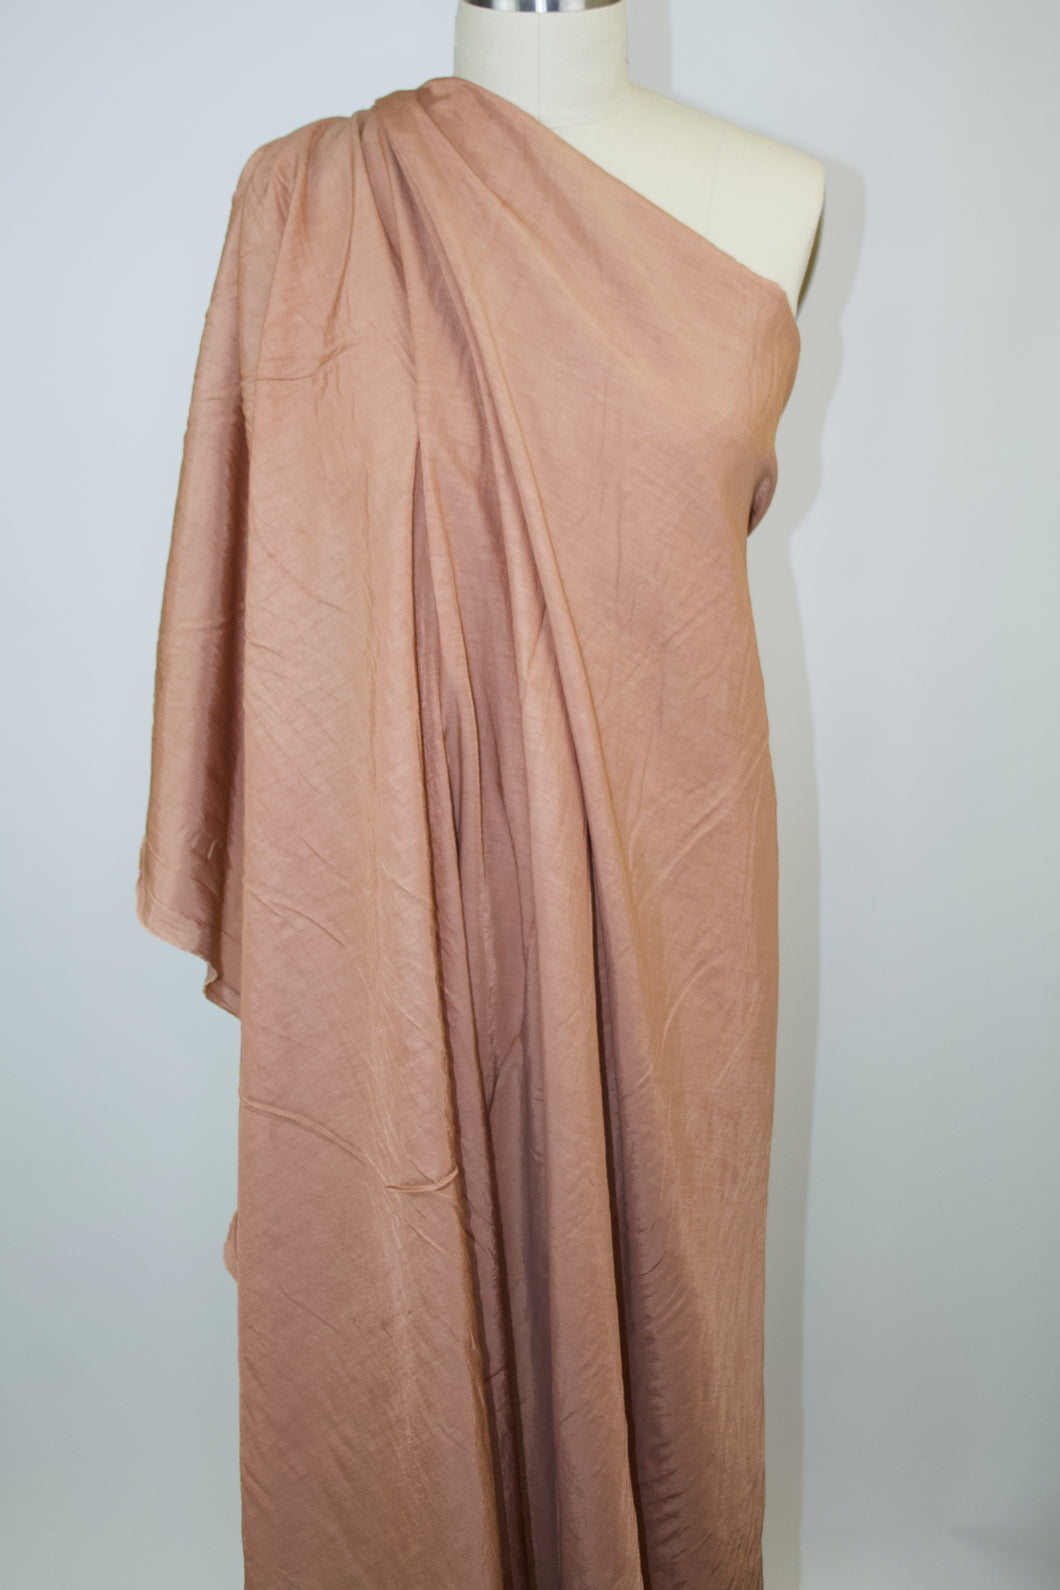 Soft Italian Blouse Weight Linen Twill - Apricot